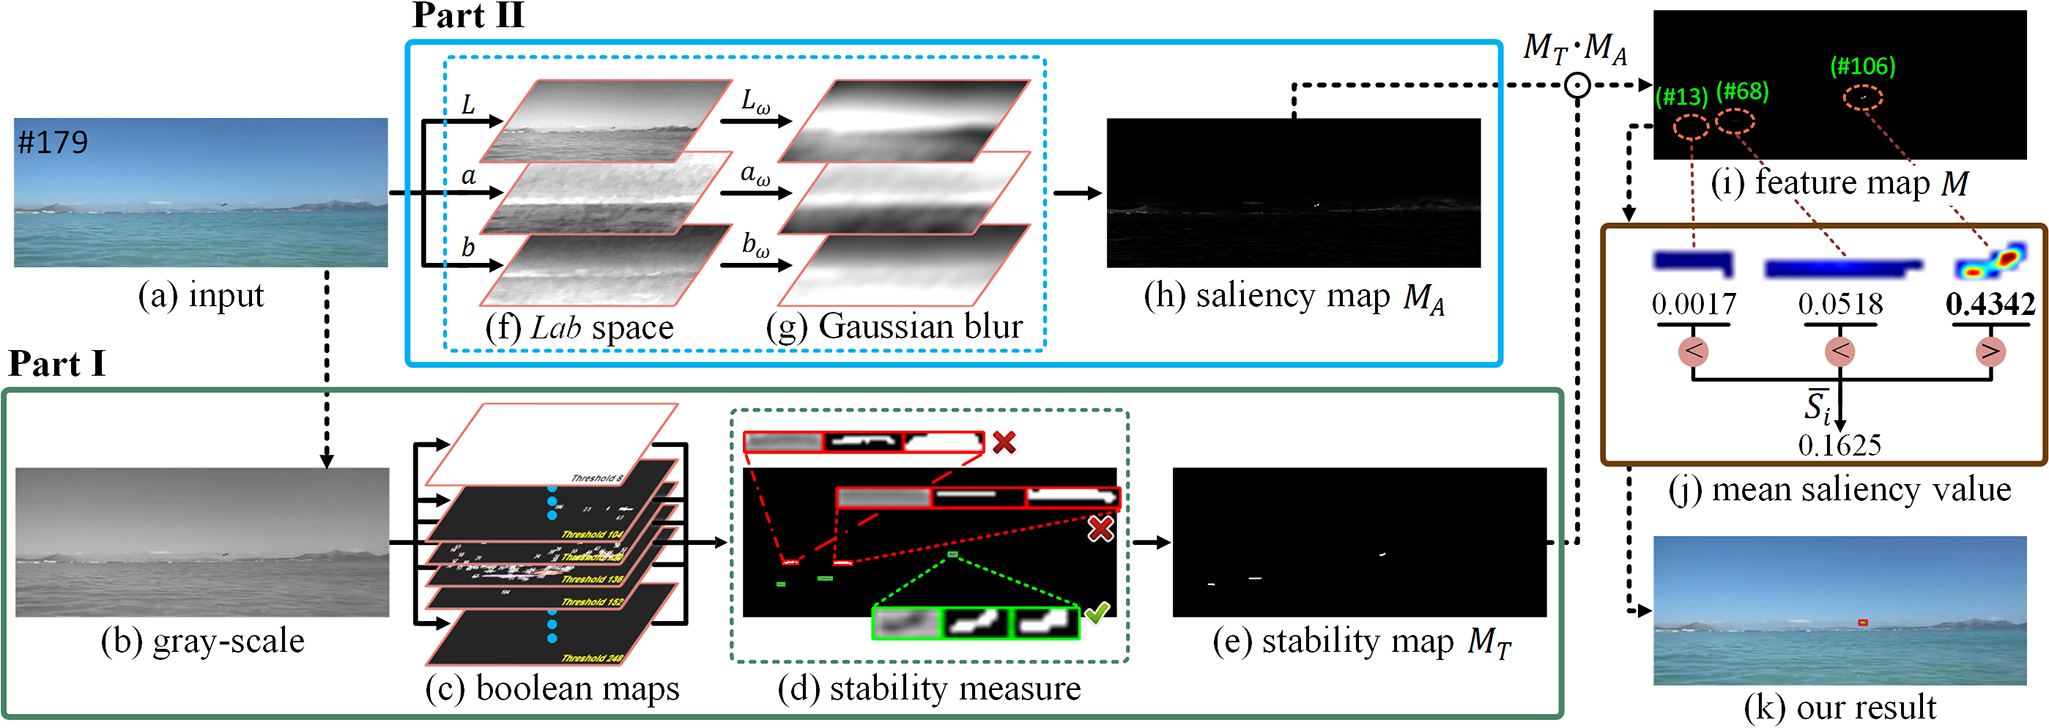 Small Target Detection Combining Regional Stability and Saliency in a Color Image - Framework